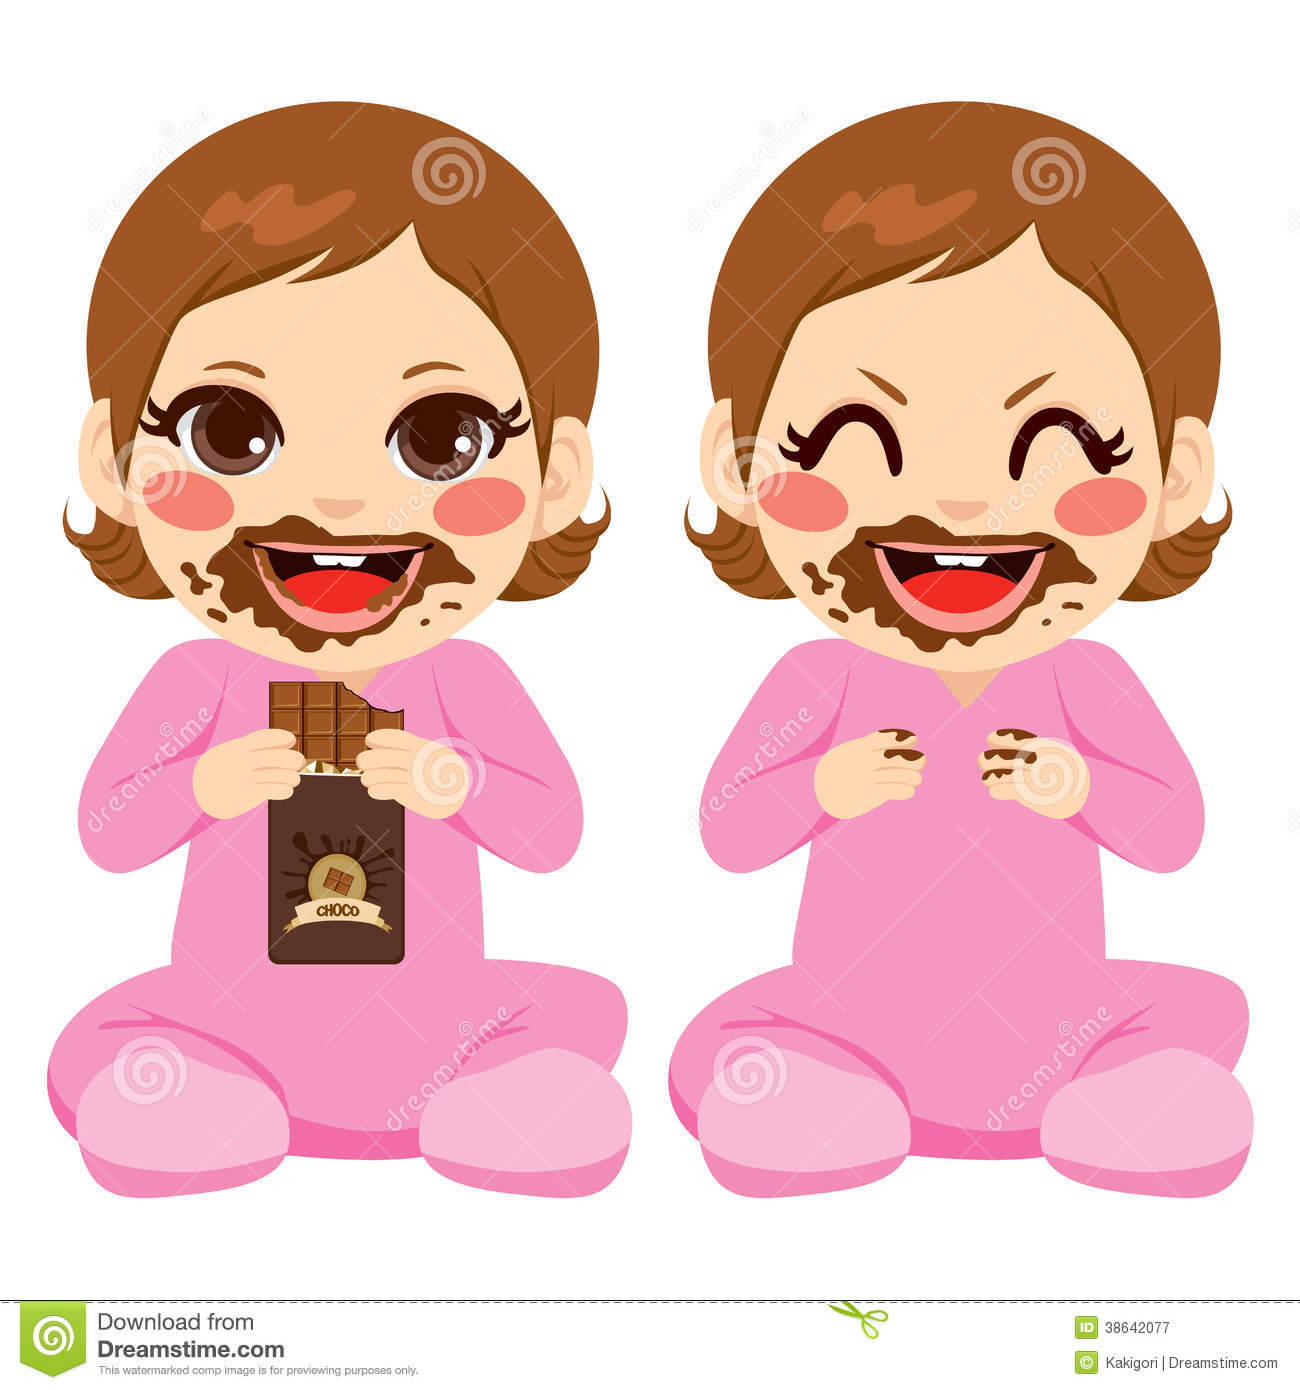 Baby Eating Cake Clipart : Baby Girl Eating Chocolate Royalty Free Stock Photography ...